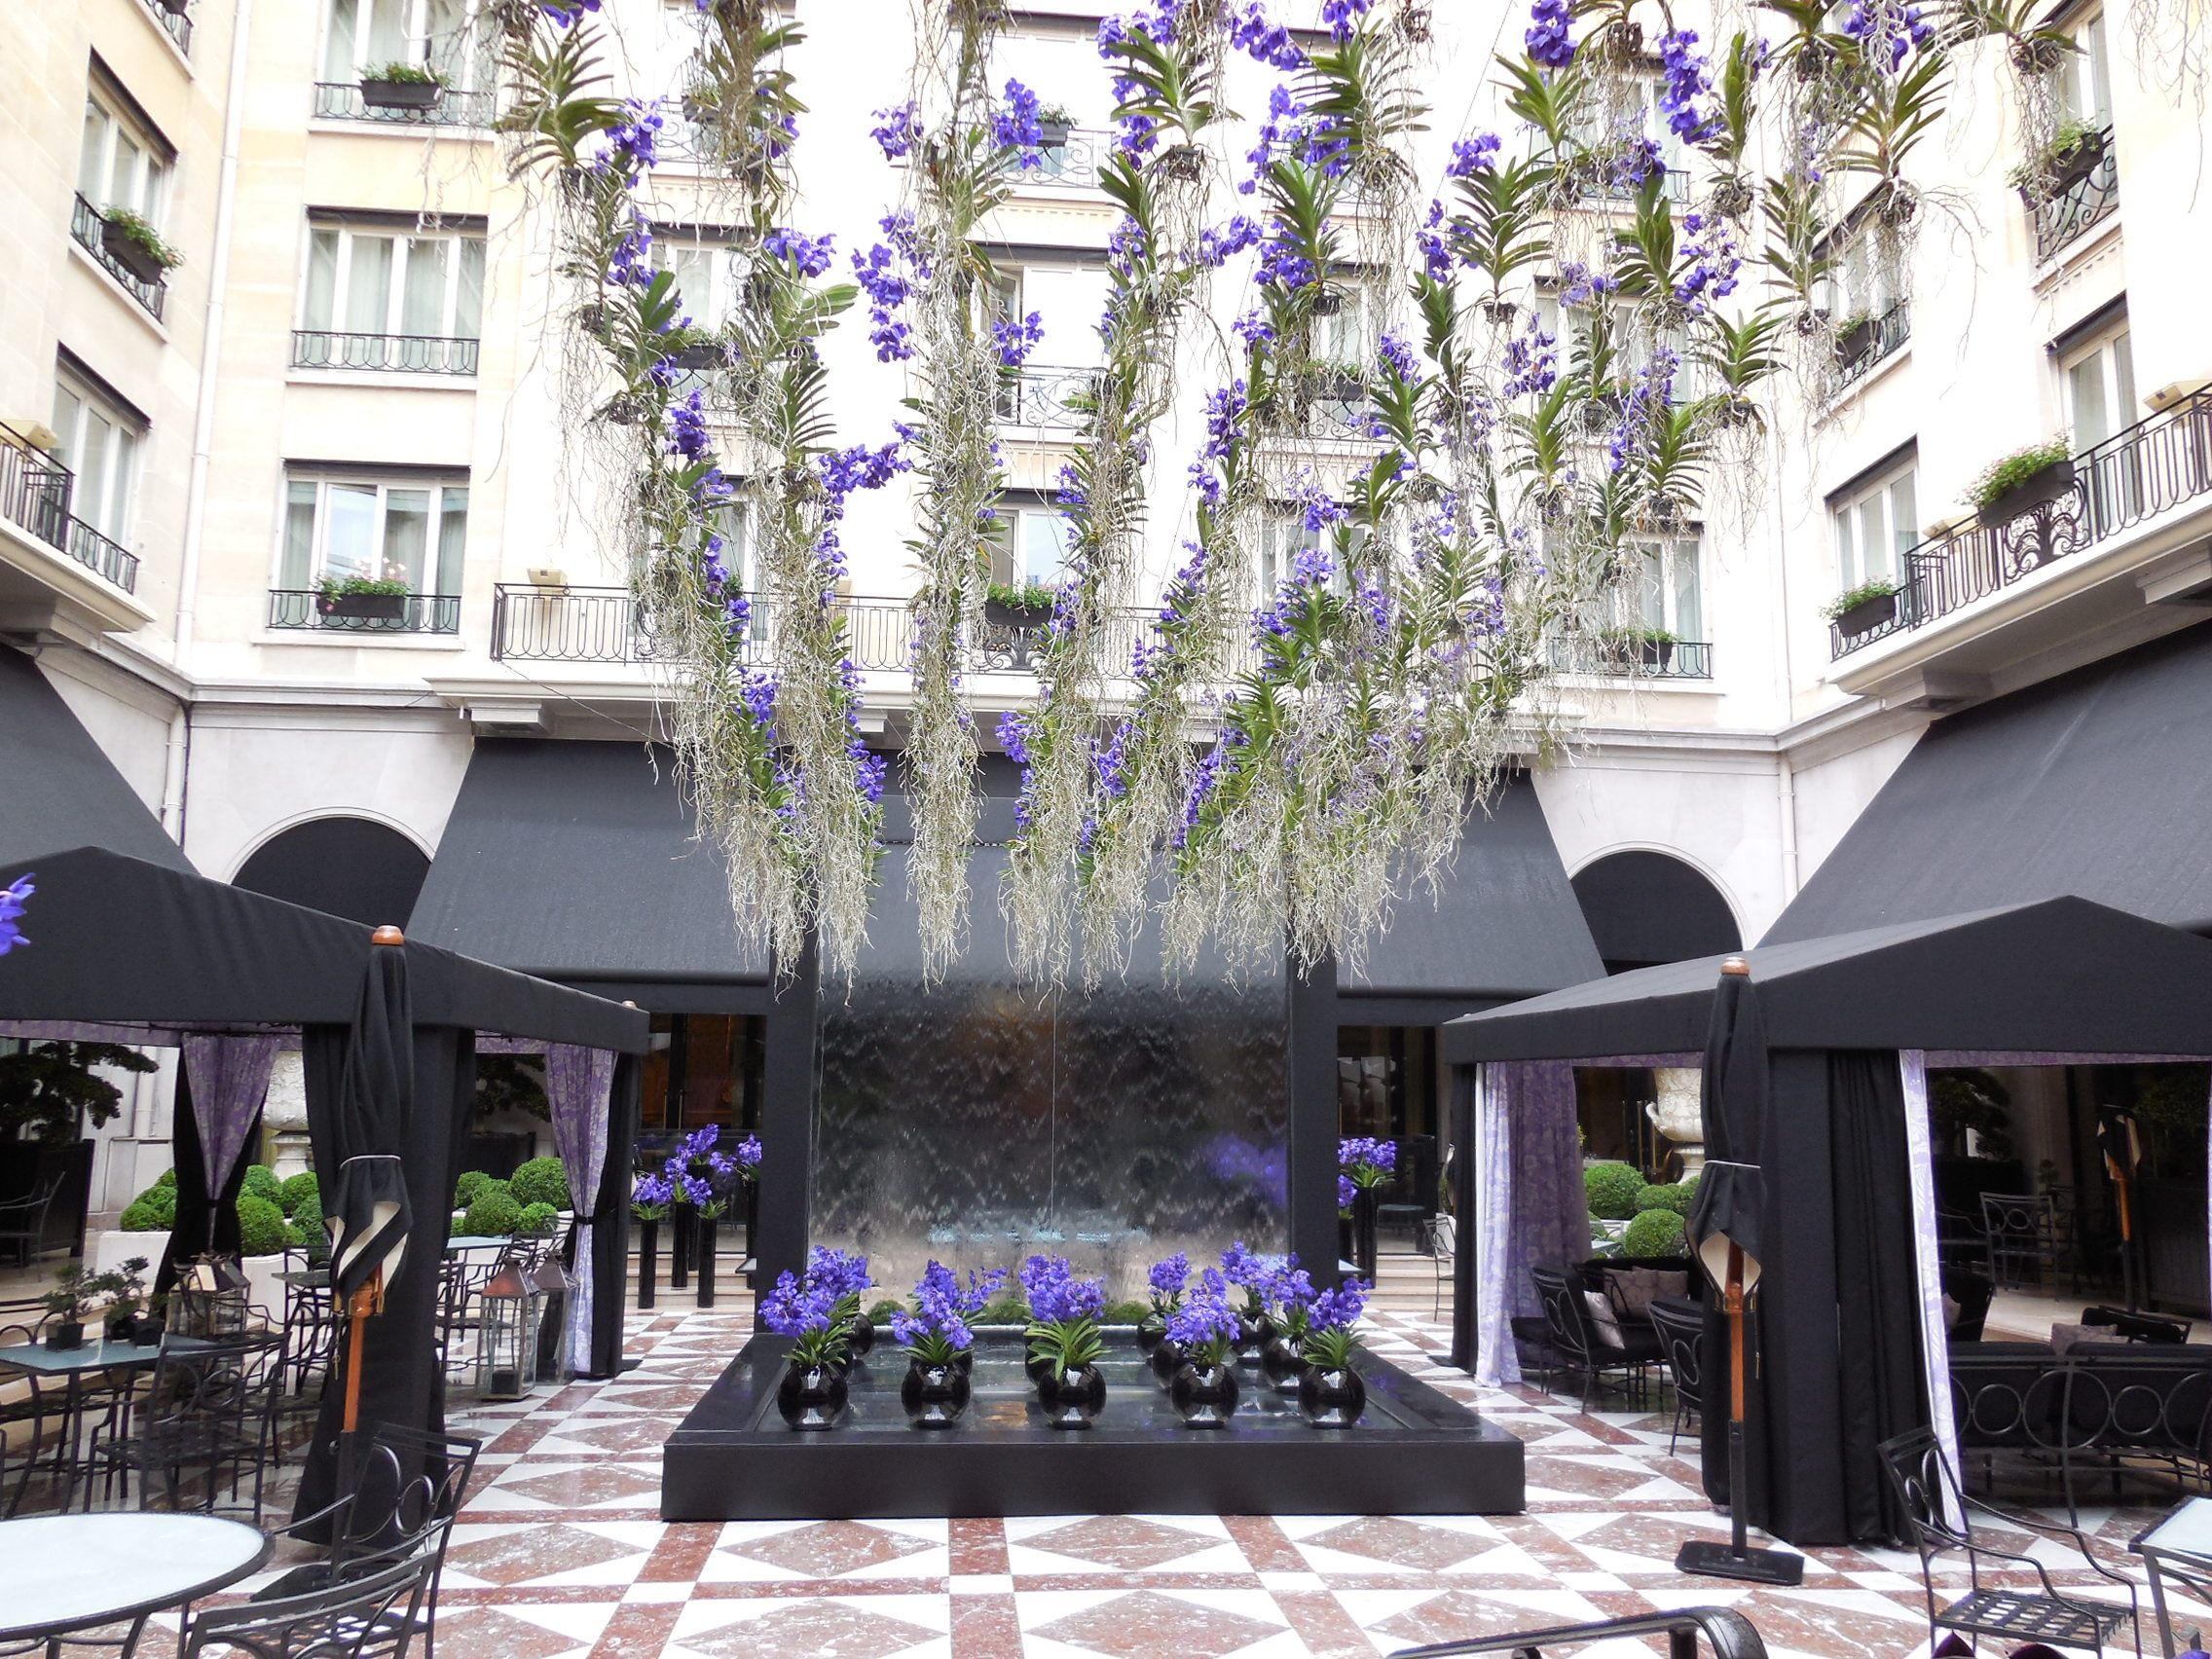 Lavender Patio At Four Seasons Hotel George V Paris (France)